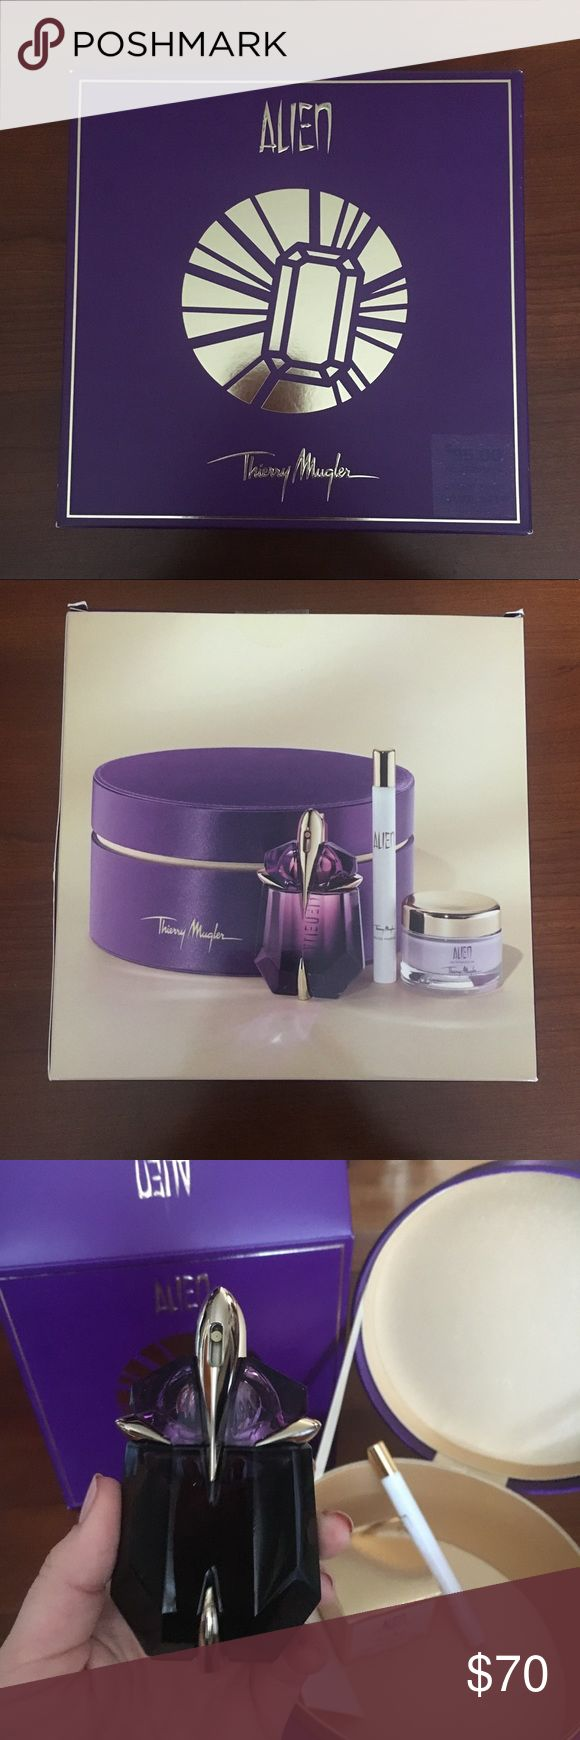 NWT MUGLER Alien holiday set! NWT MUGLER Alien eau de parfum holiday set! Includes 1 oz. refillable Alien EDP spray, 0.23 oz. deluxe purse spray and 1 oz. deluxe luxurious body cream! All product is authentic and housed in beautiful purple round box. Amazing holiday gift, open to all reasonable offers!! Mugler Other